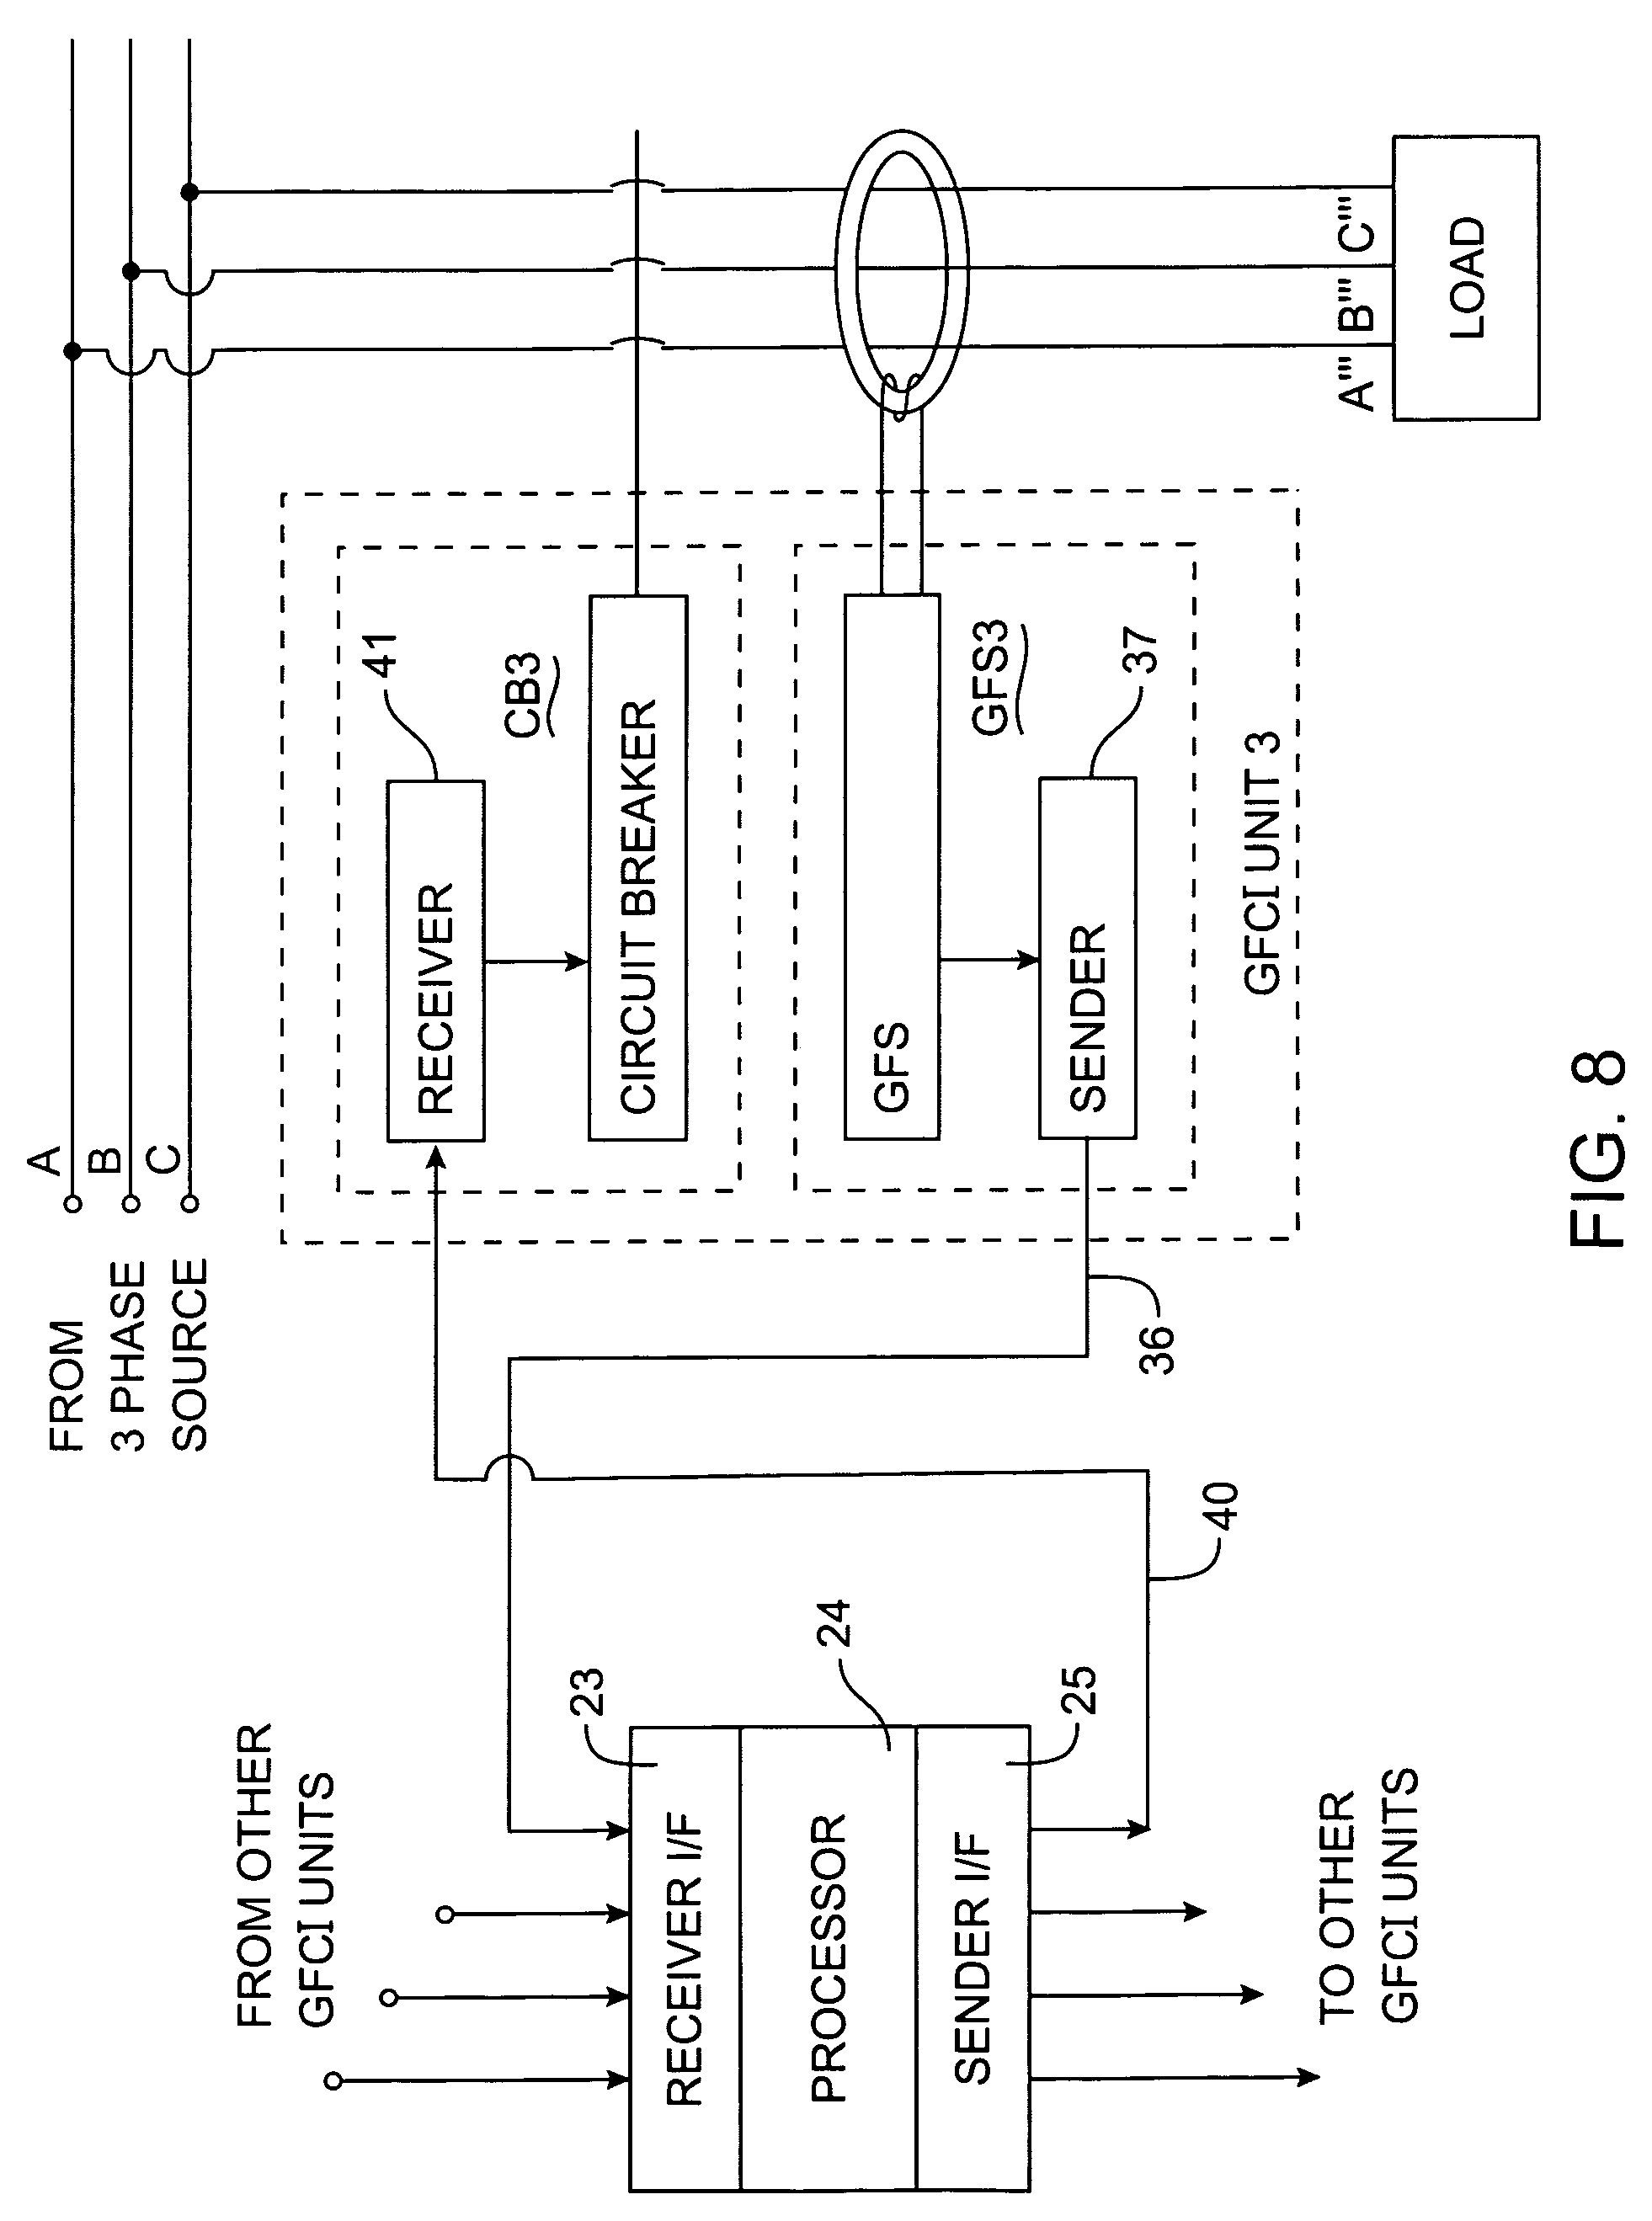 Diagram For 3 Wire Grounding 220 Volt With Interrutor : 53